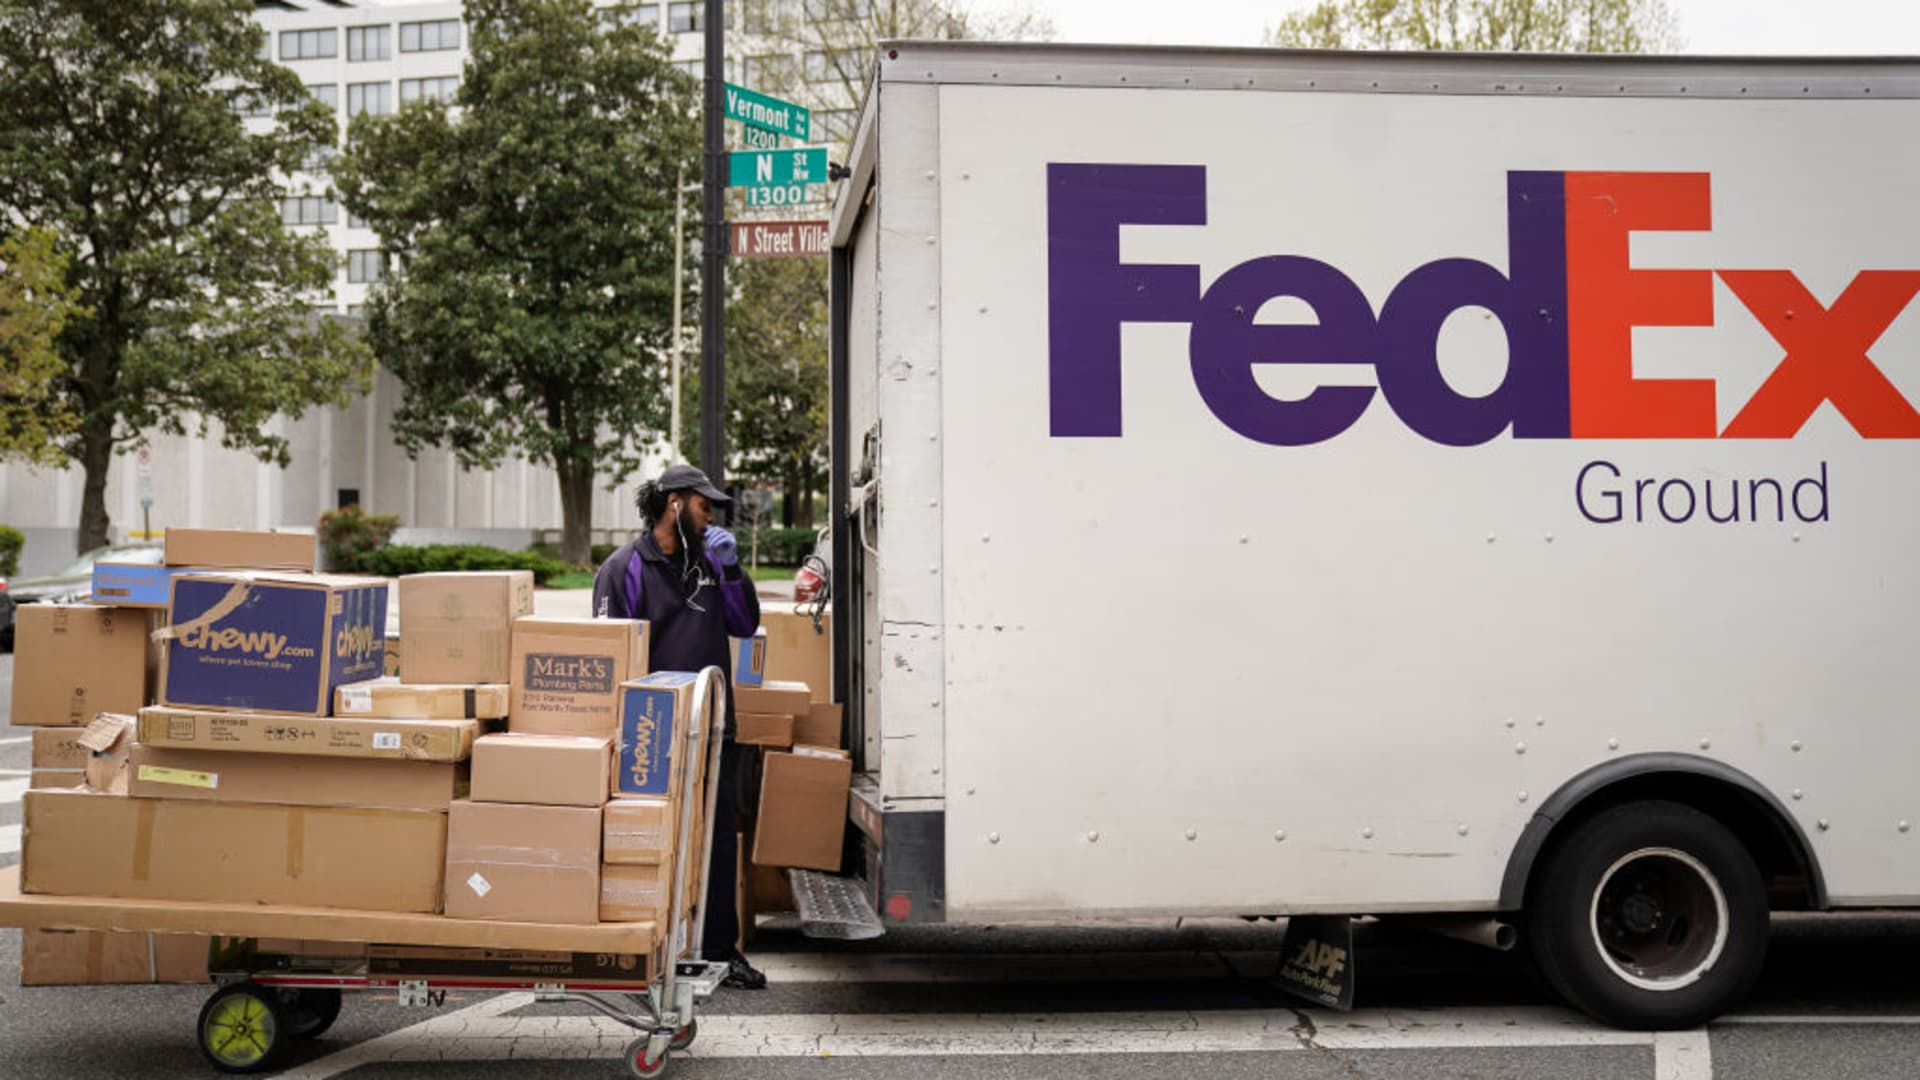 A FedEx worker unloads packages from his delivery truck on March 31, 2020 in Washington, DC.